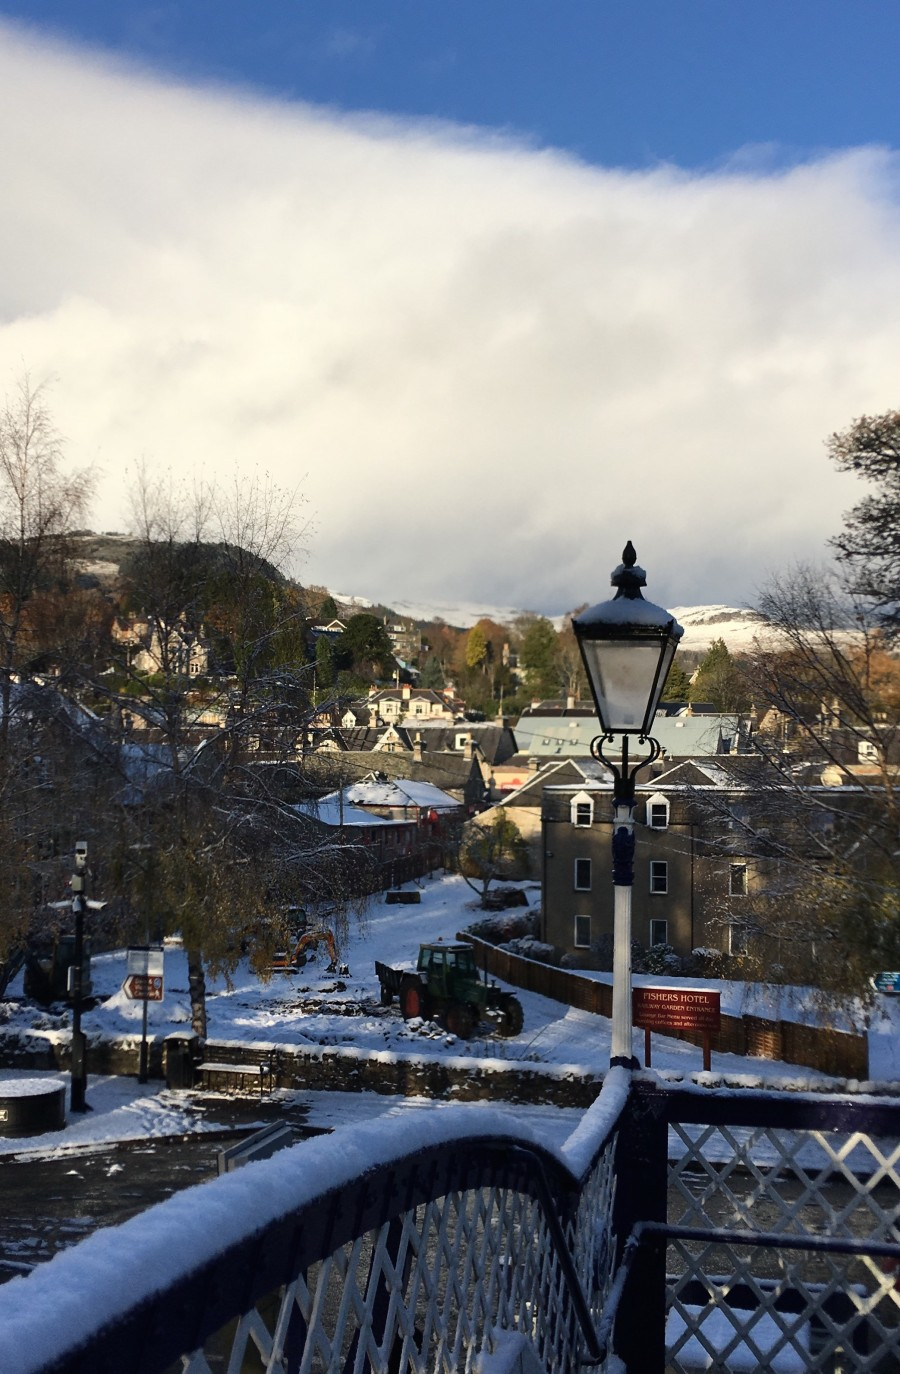 Photo of a snowy scene in Pitlochry in Scotland.